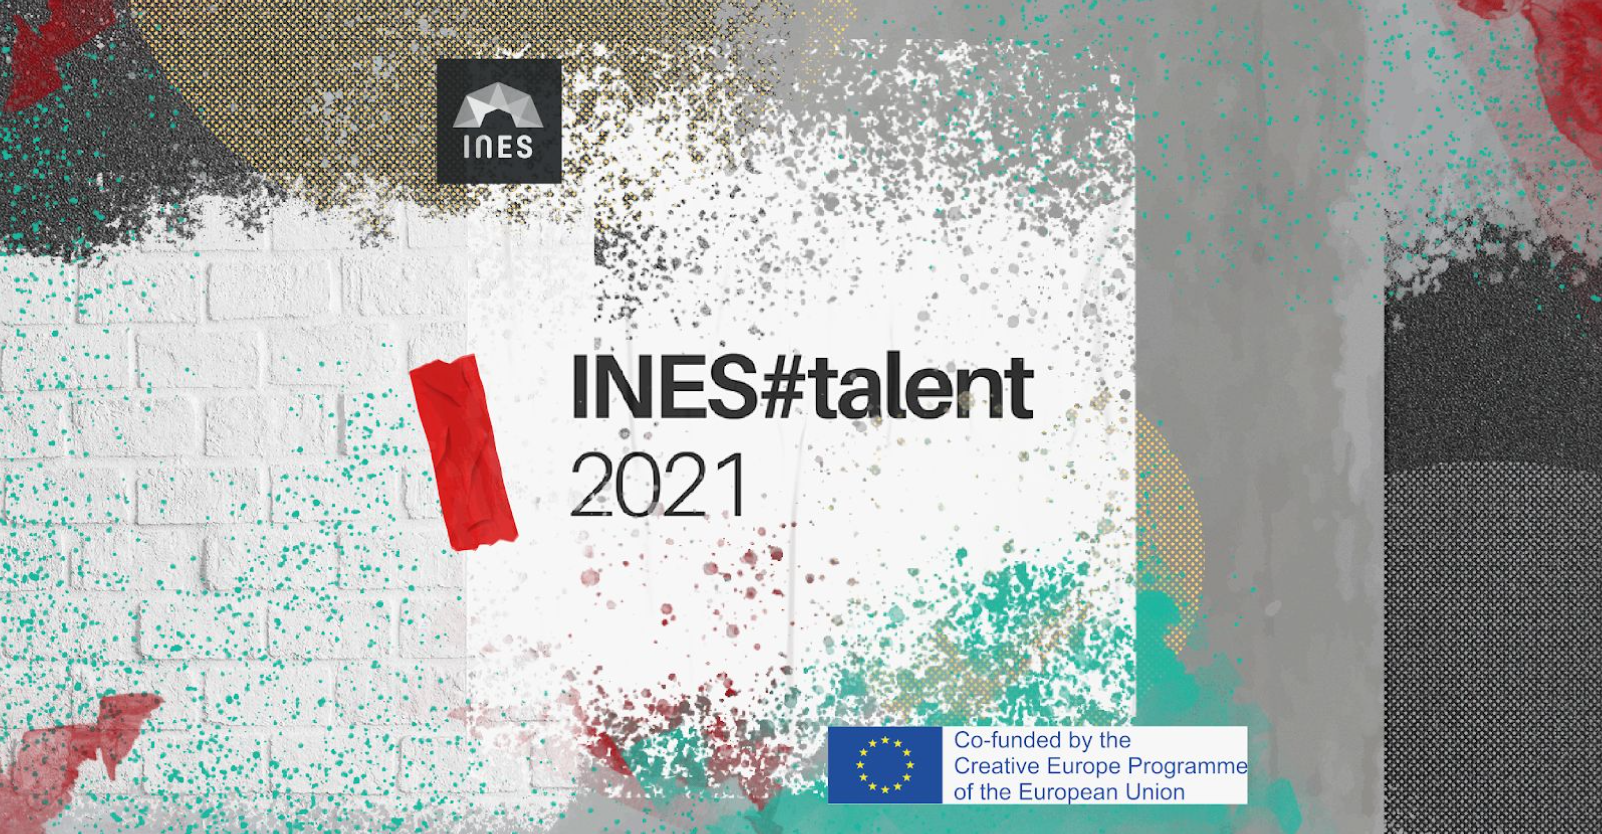 INES#talents 2021